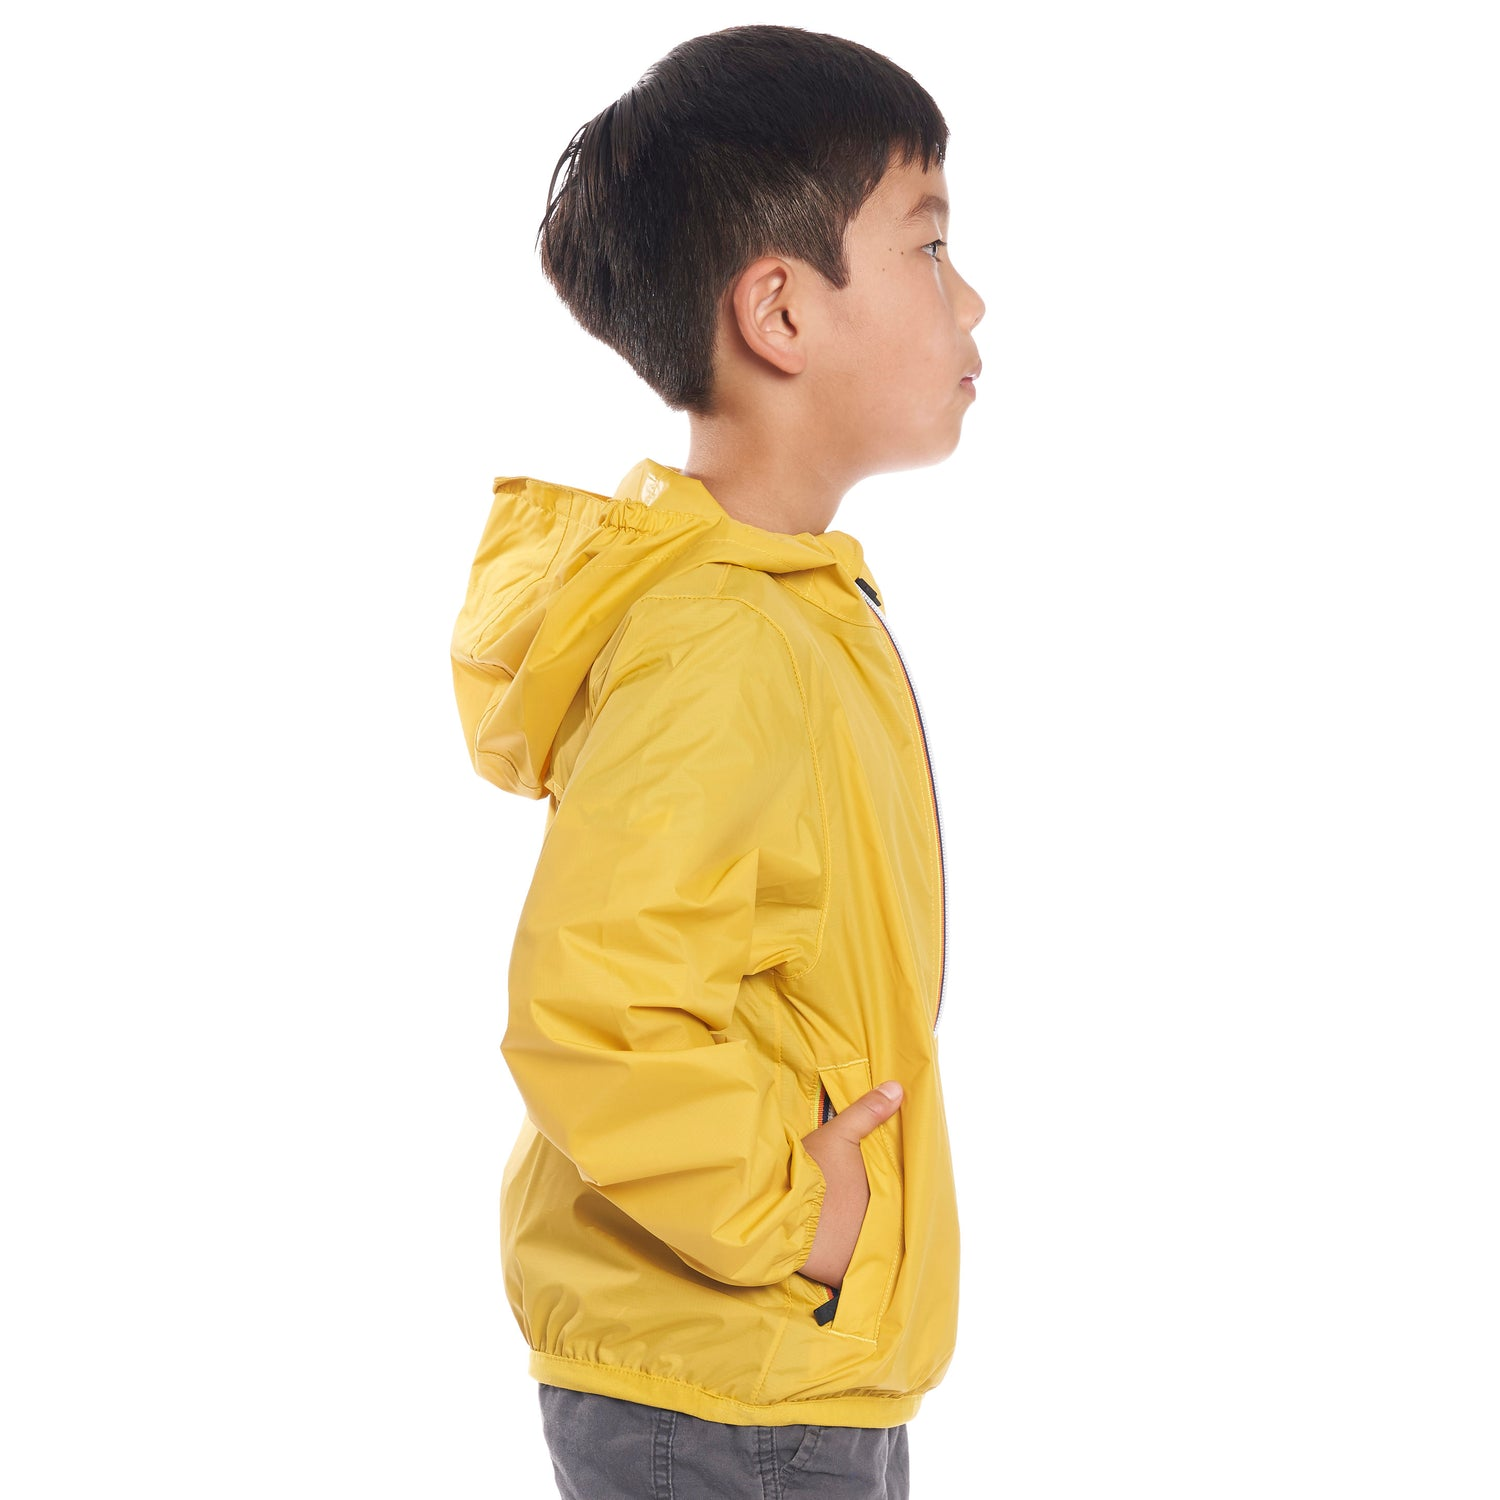 Kids Le Vrai 3.0 Claude Jacket Yellow Mustard